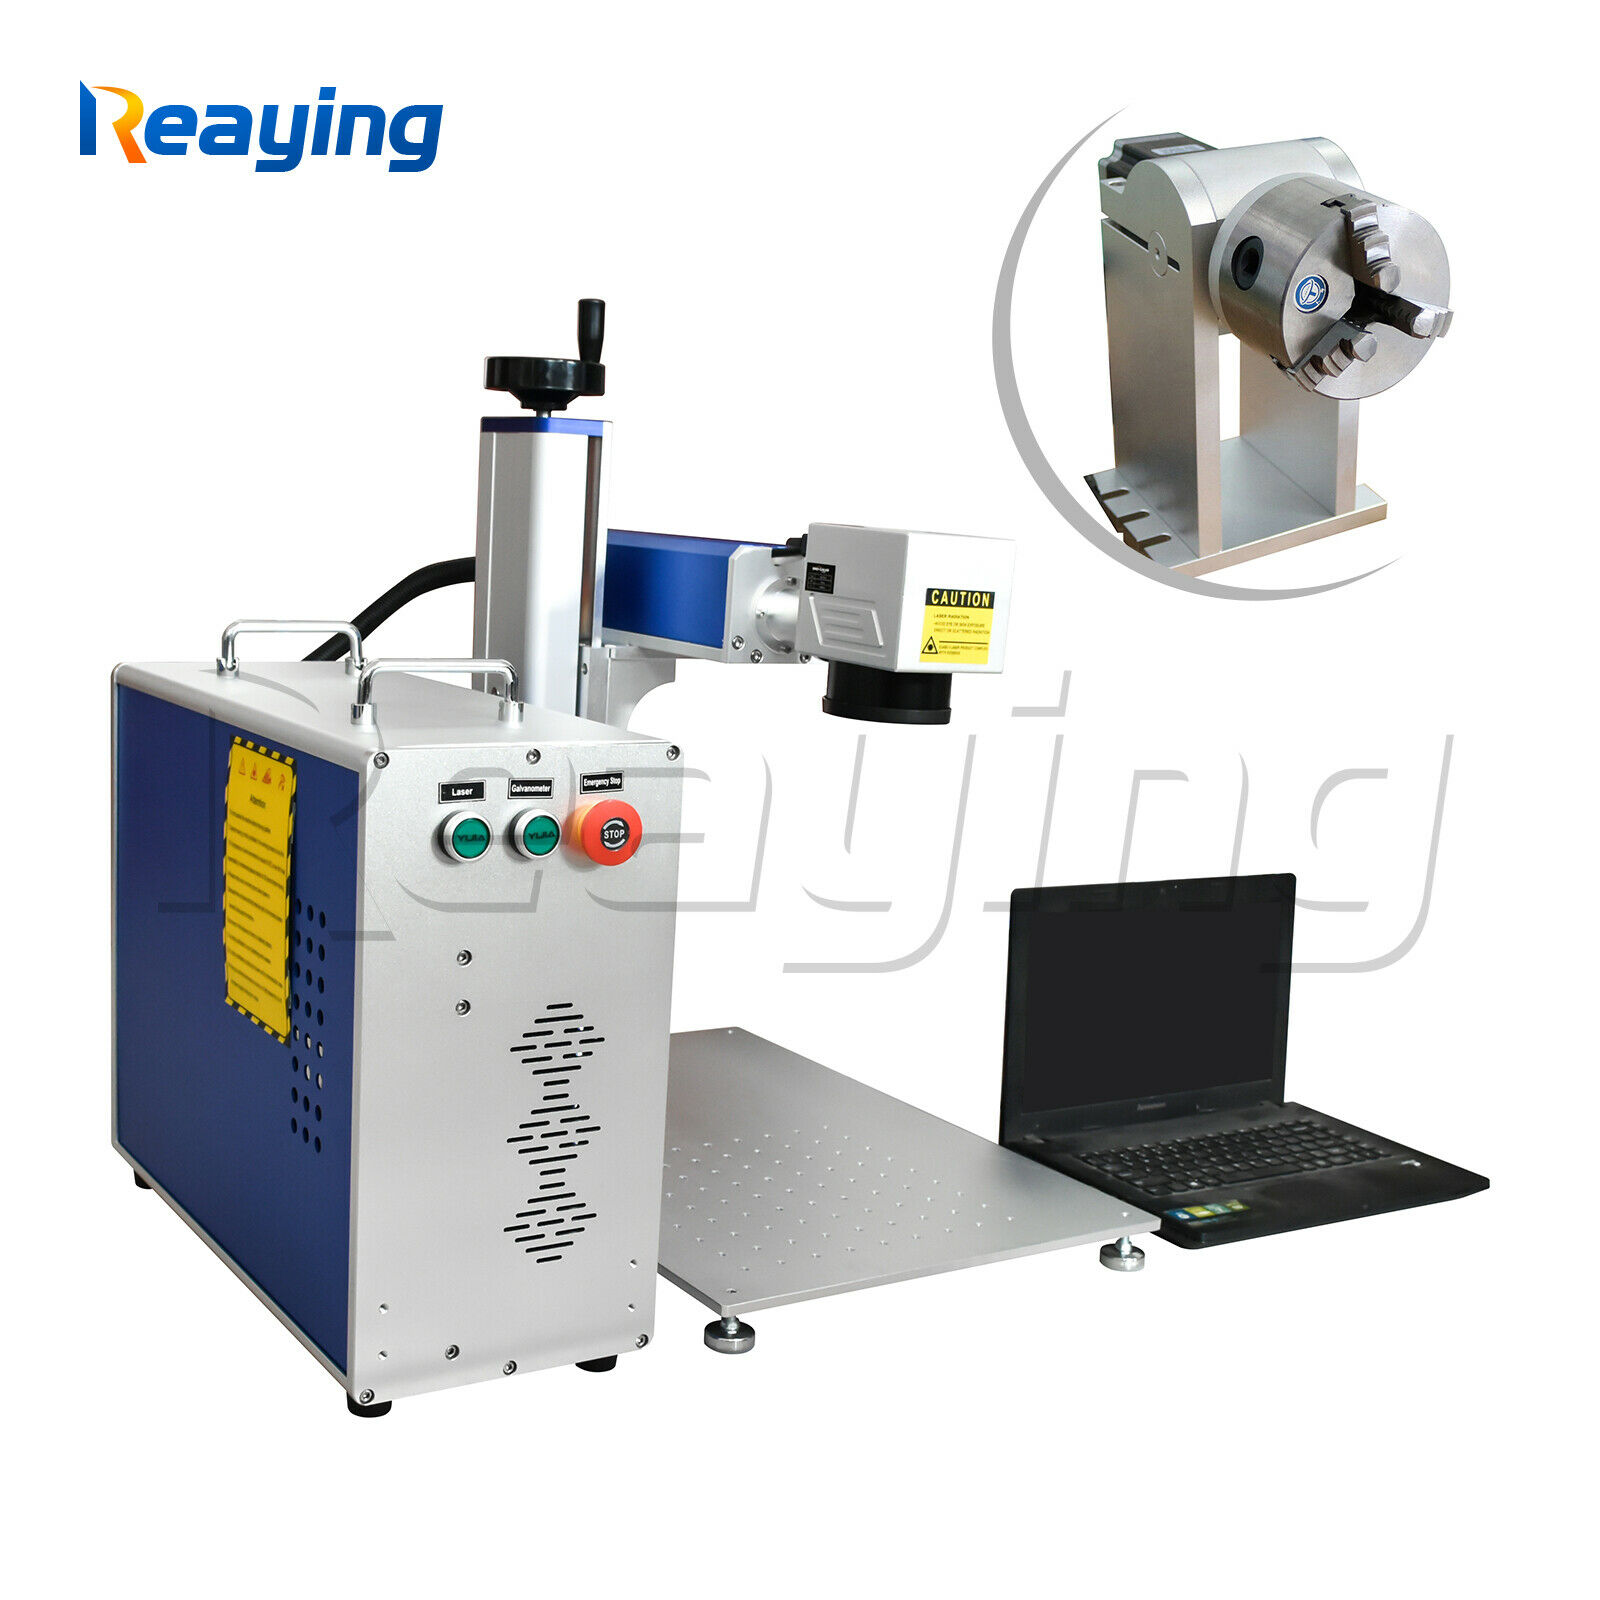 Reaying fiber laser metal marking machine stainless steel laser engraving machine with red dotReaying fiber laser metal marking machine stainless steel laser engraving machine with red dot